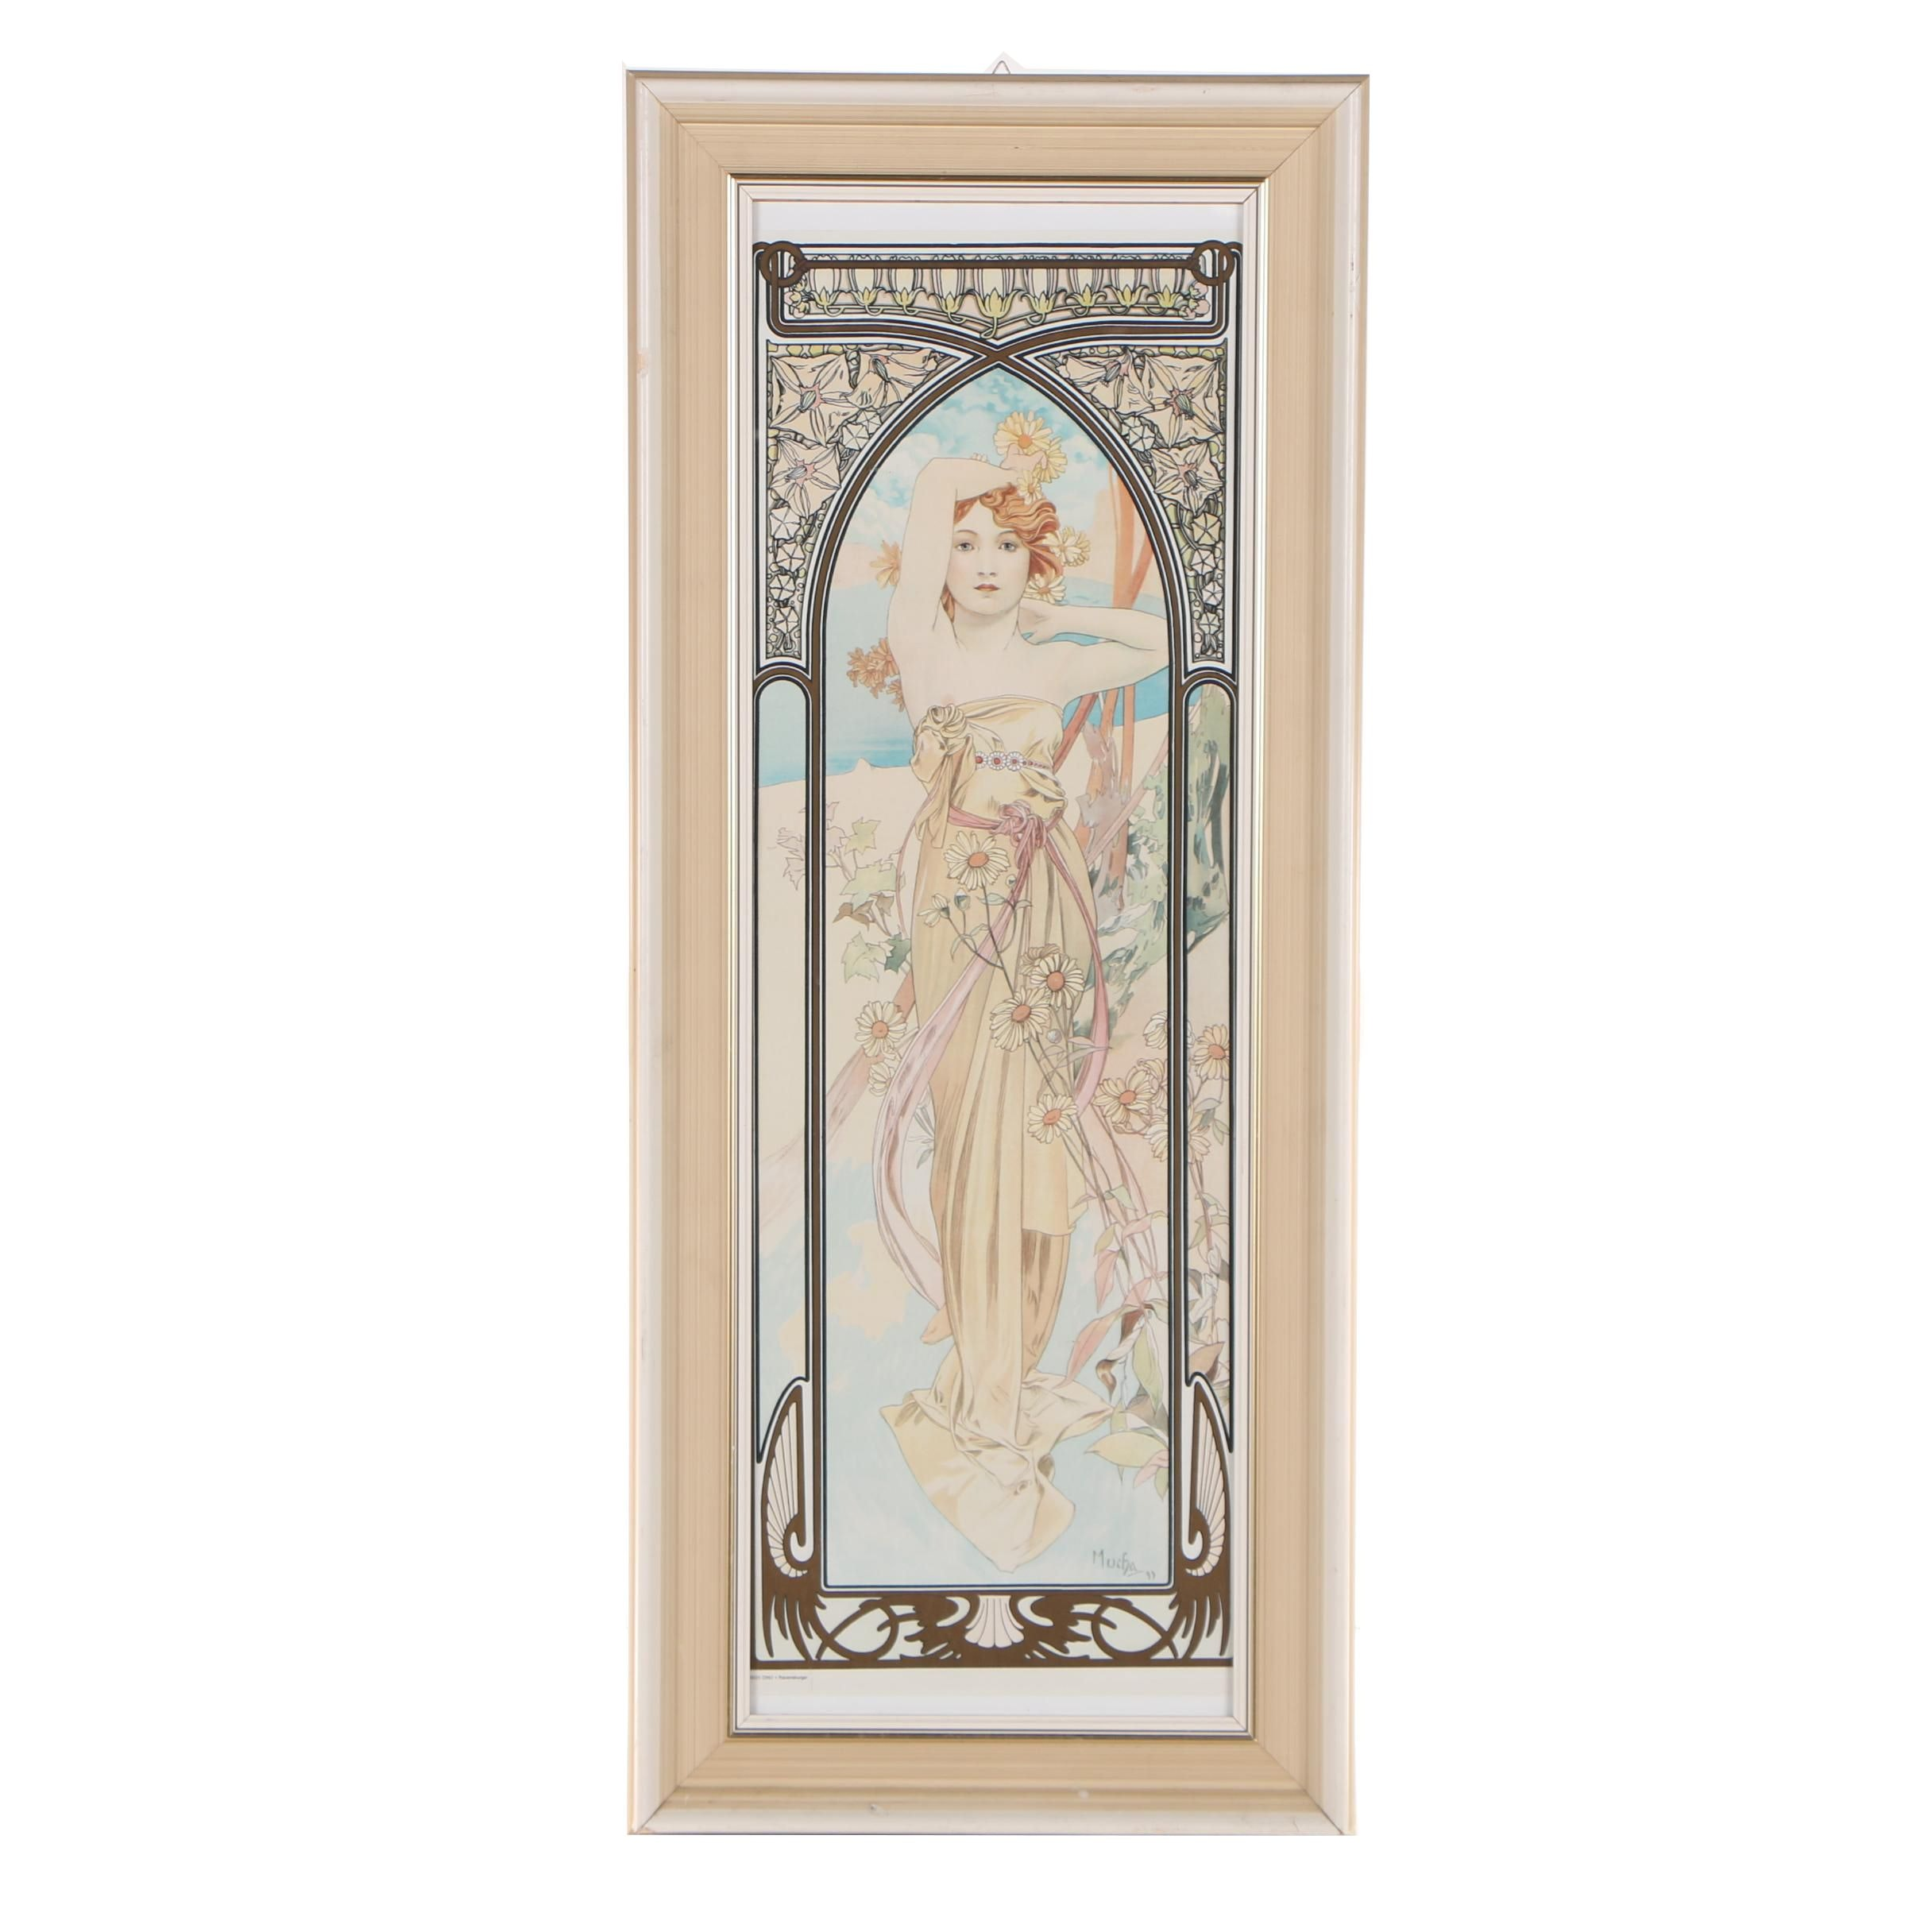 Offset Lithograph after Alphonse Maria Mucha